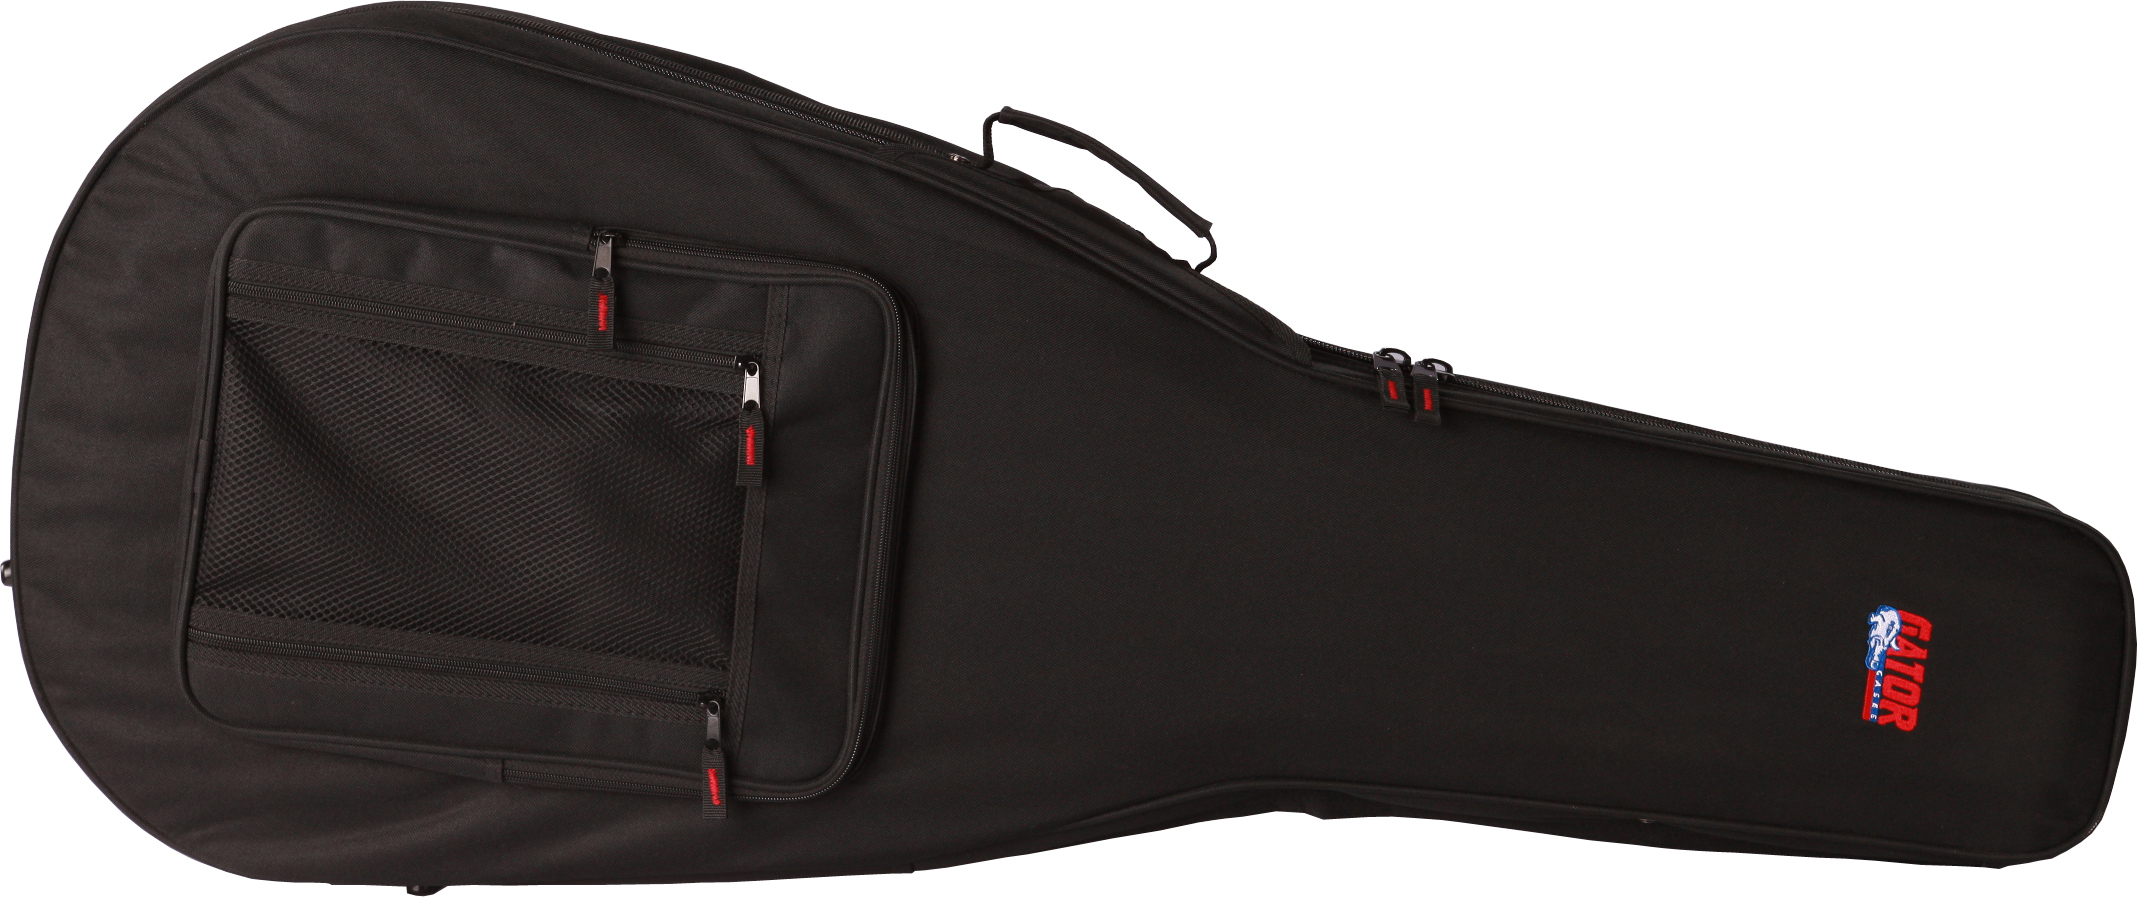 Gator GL-Dread-12 Lightweight Dreadnought Guitar Case by Gator